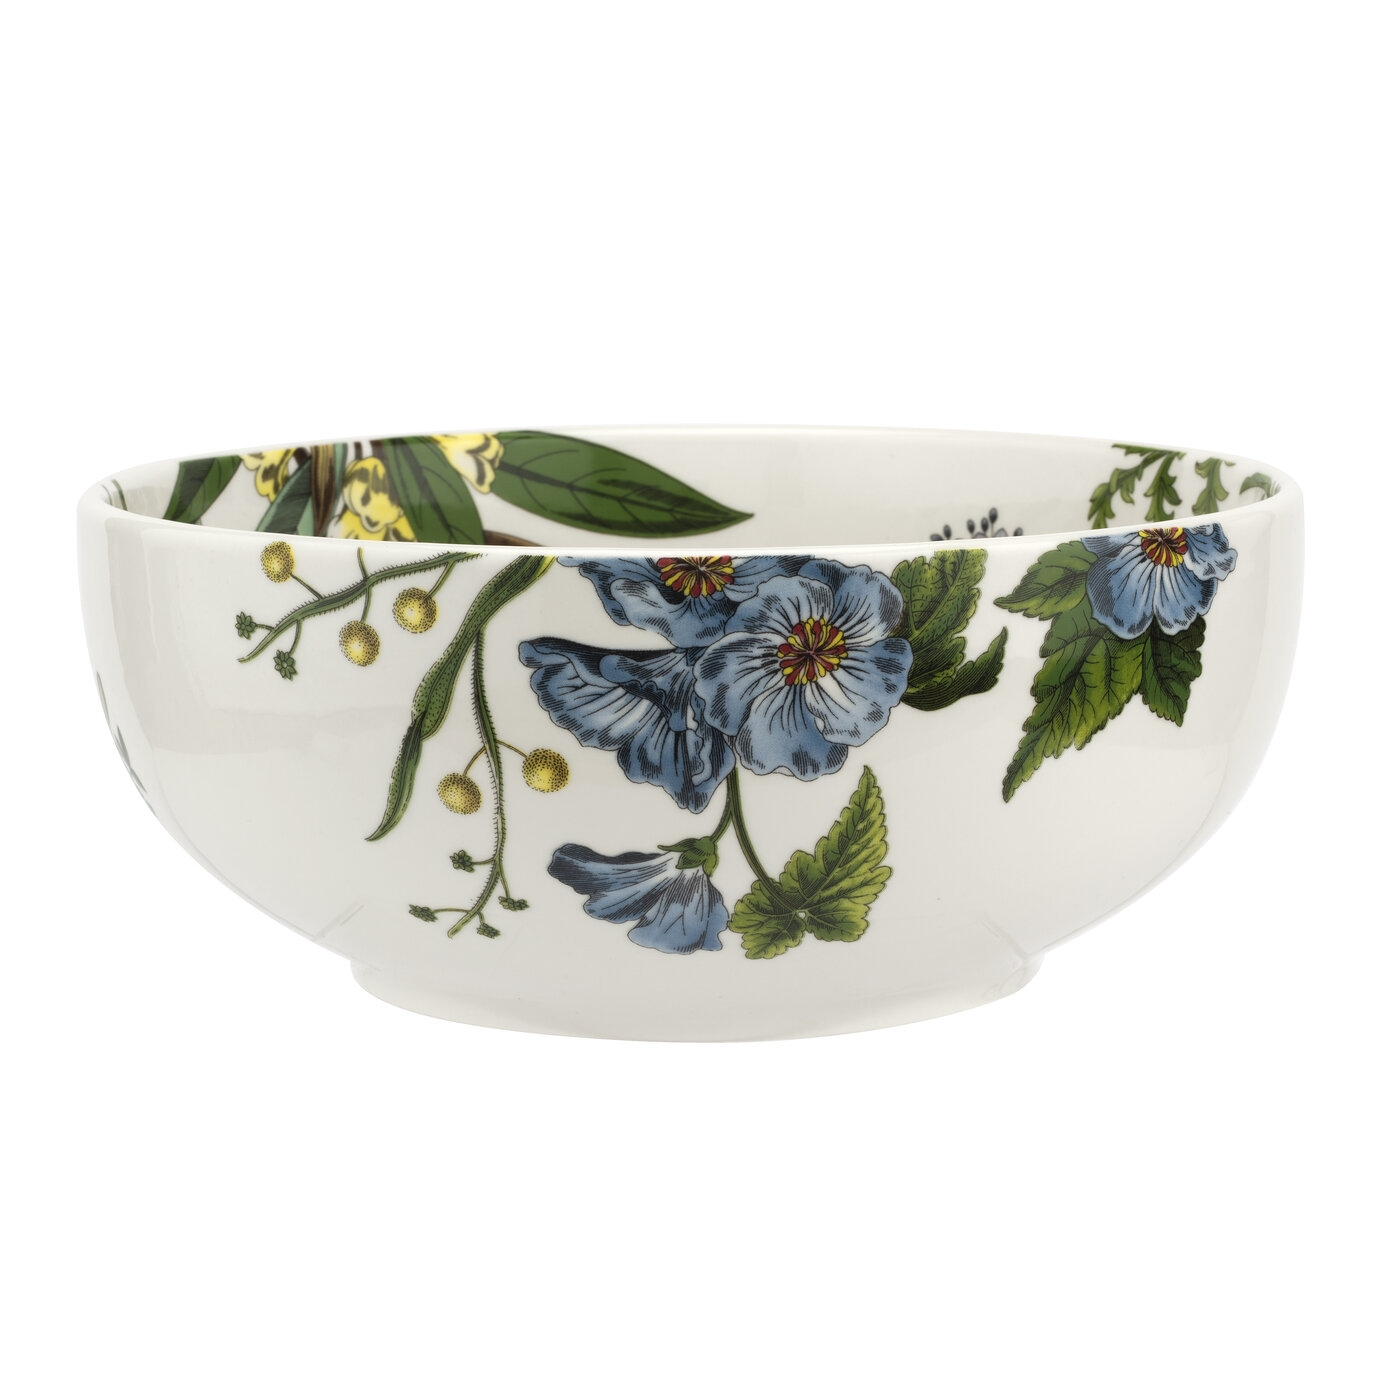 Spode Stafford Blooms 8 Inch Bowl image number 0